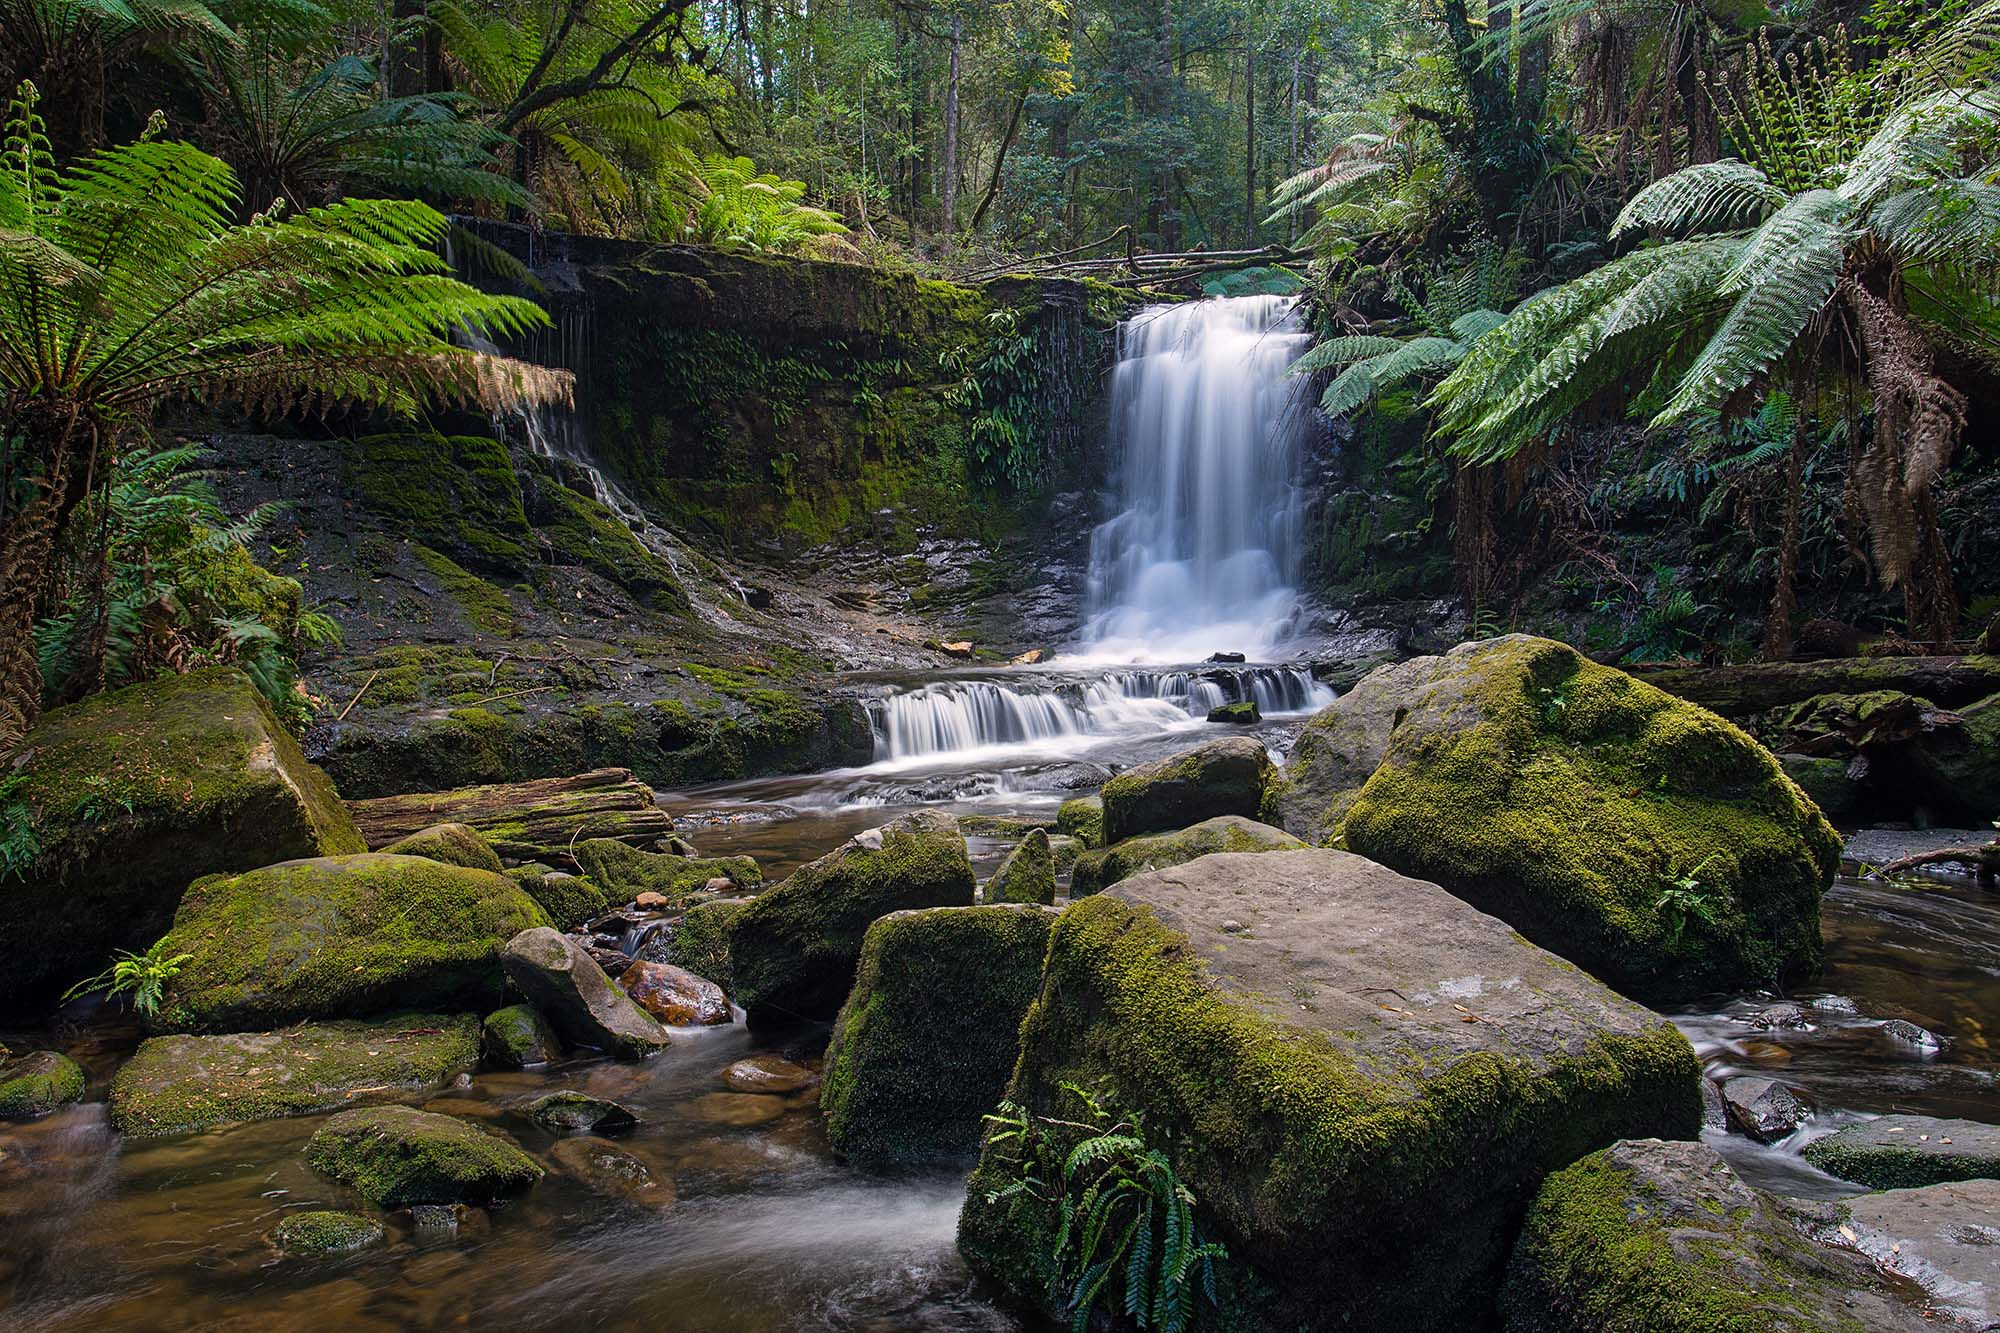 Horseshoe Falls in Mount Field National Park near Hobart, Tasmania, Australia